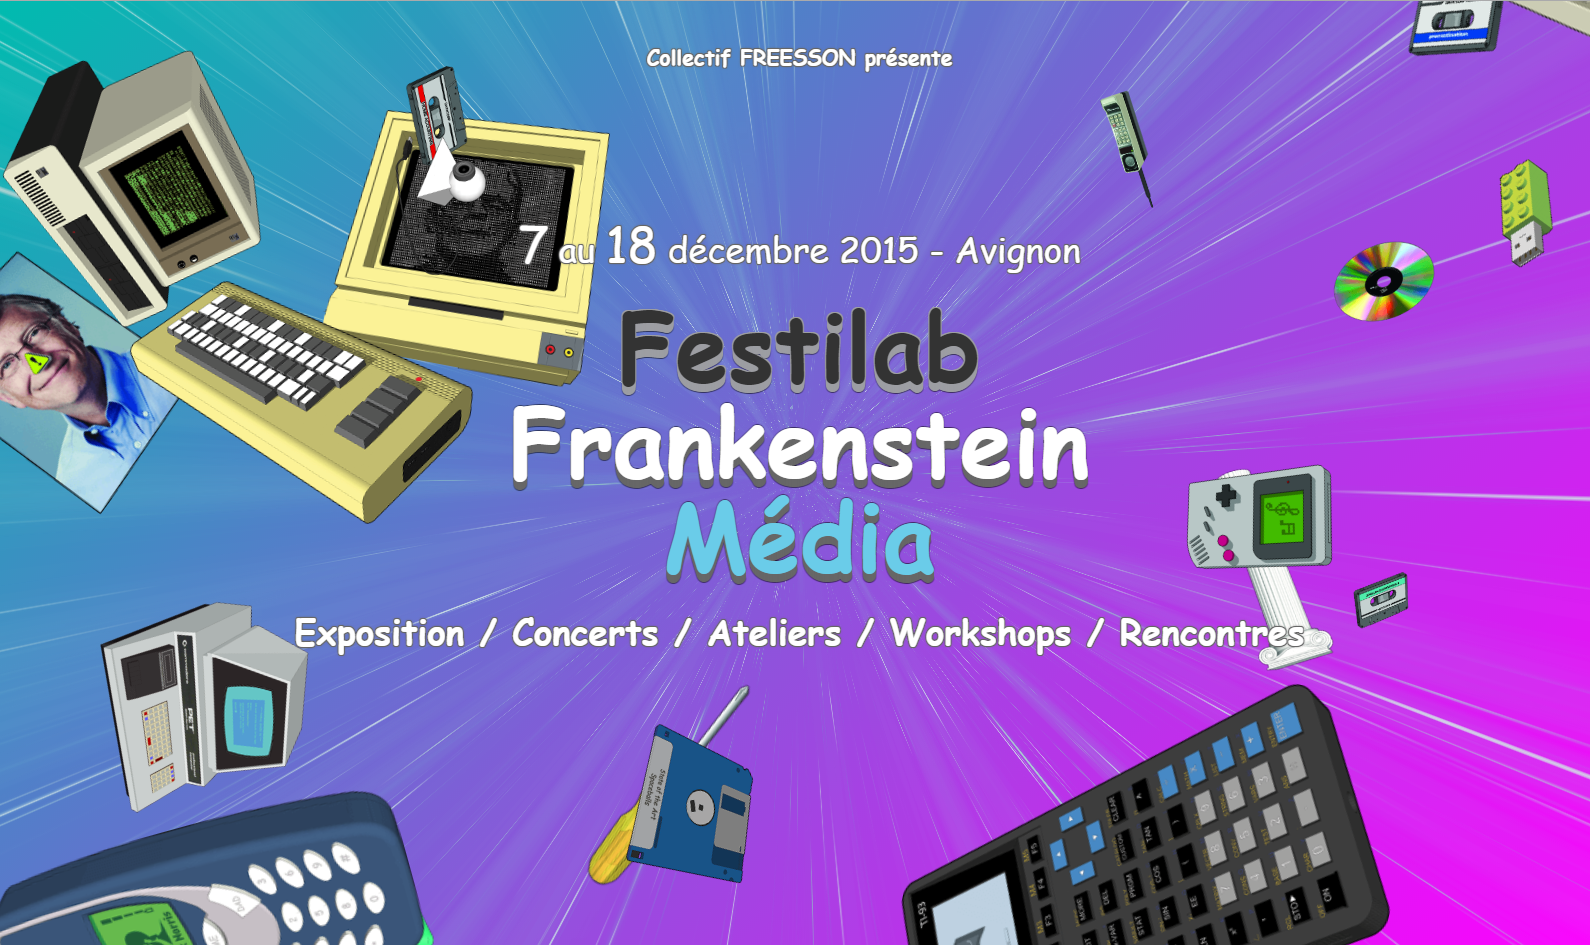 Live at Festilab in Avignon